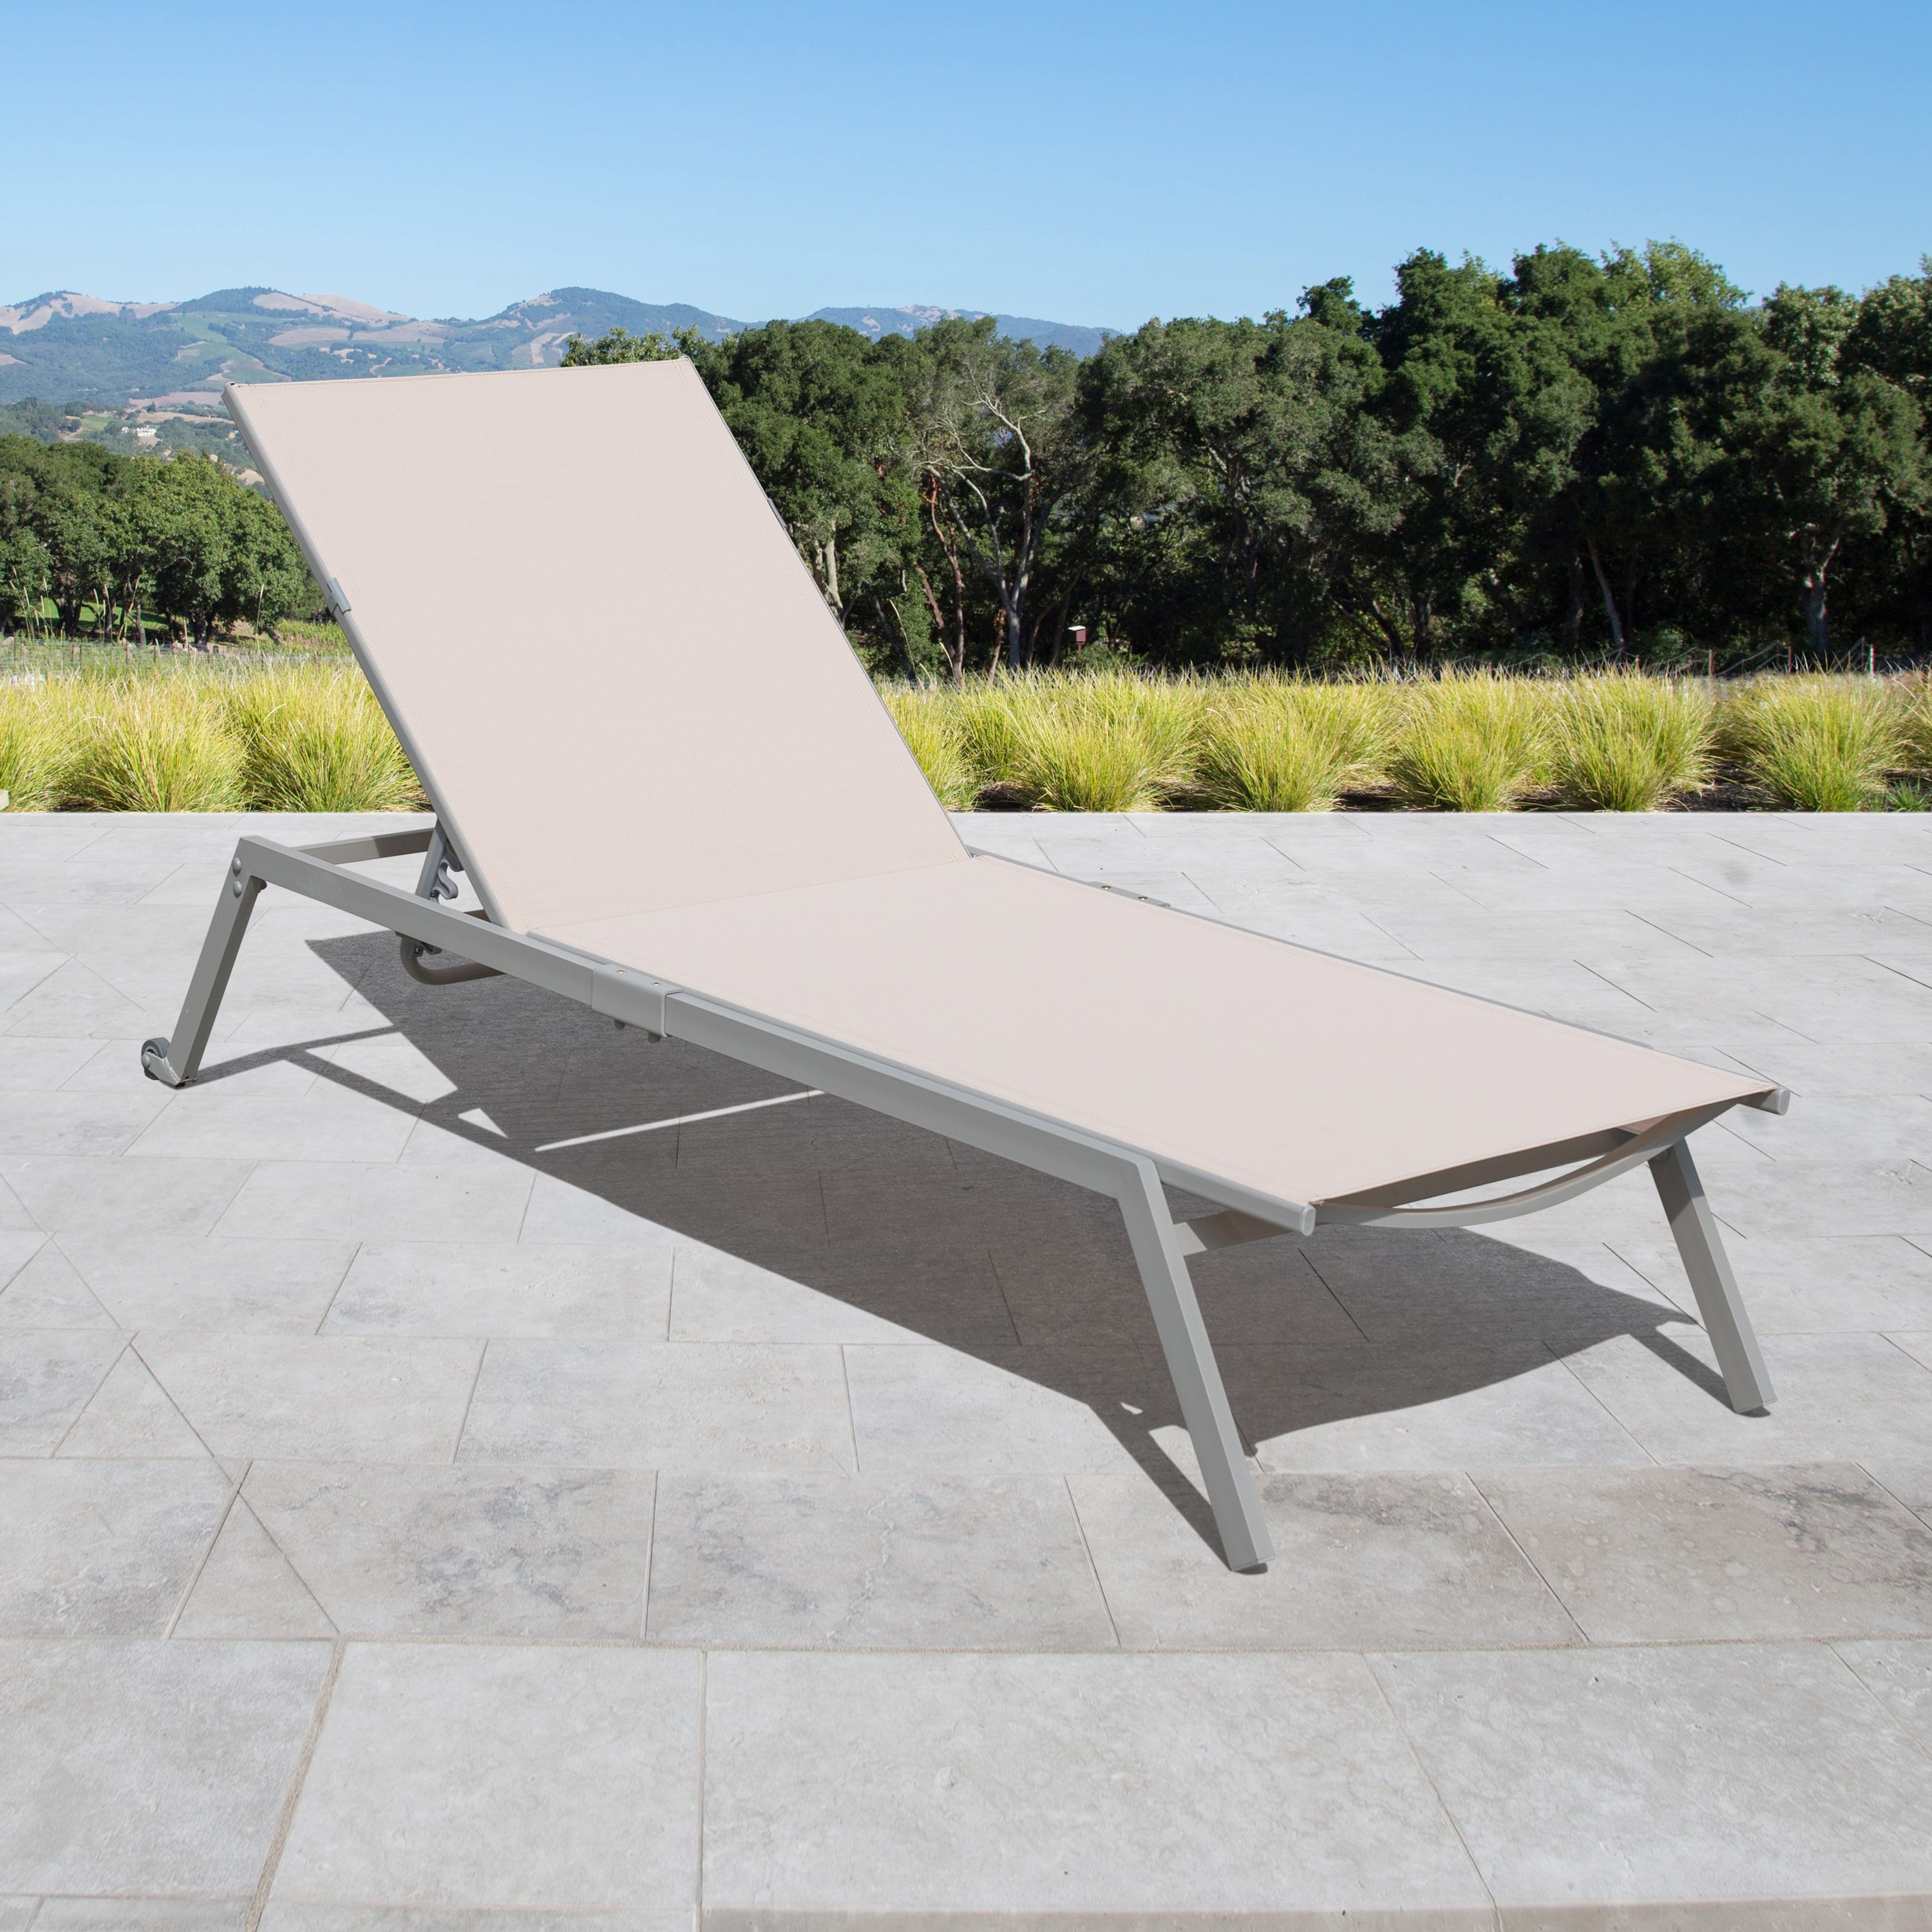 Fabric Reclining Outdoor Chaise Lounges Pertaining To Most Recently Released Corvus Torino Sling Fabric Reclining Outdoor Chaise Lounges (View 1 of 25)